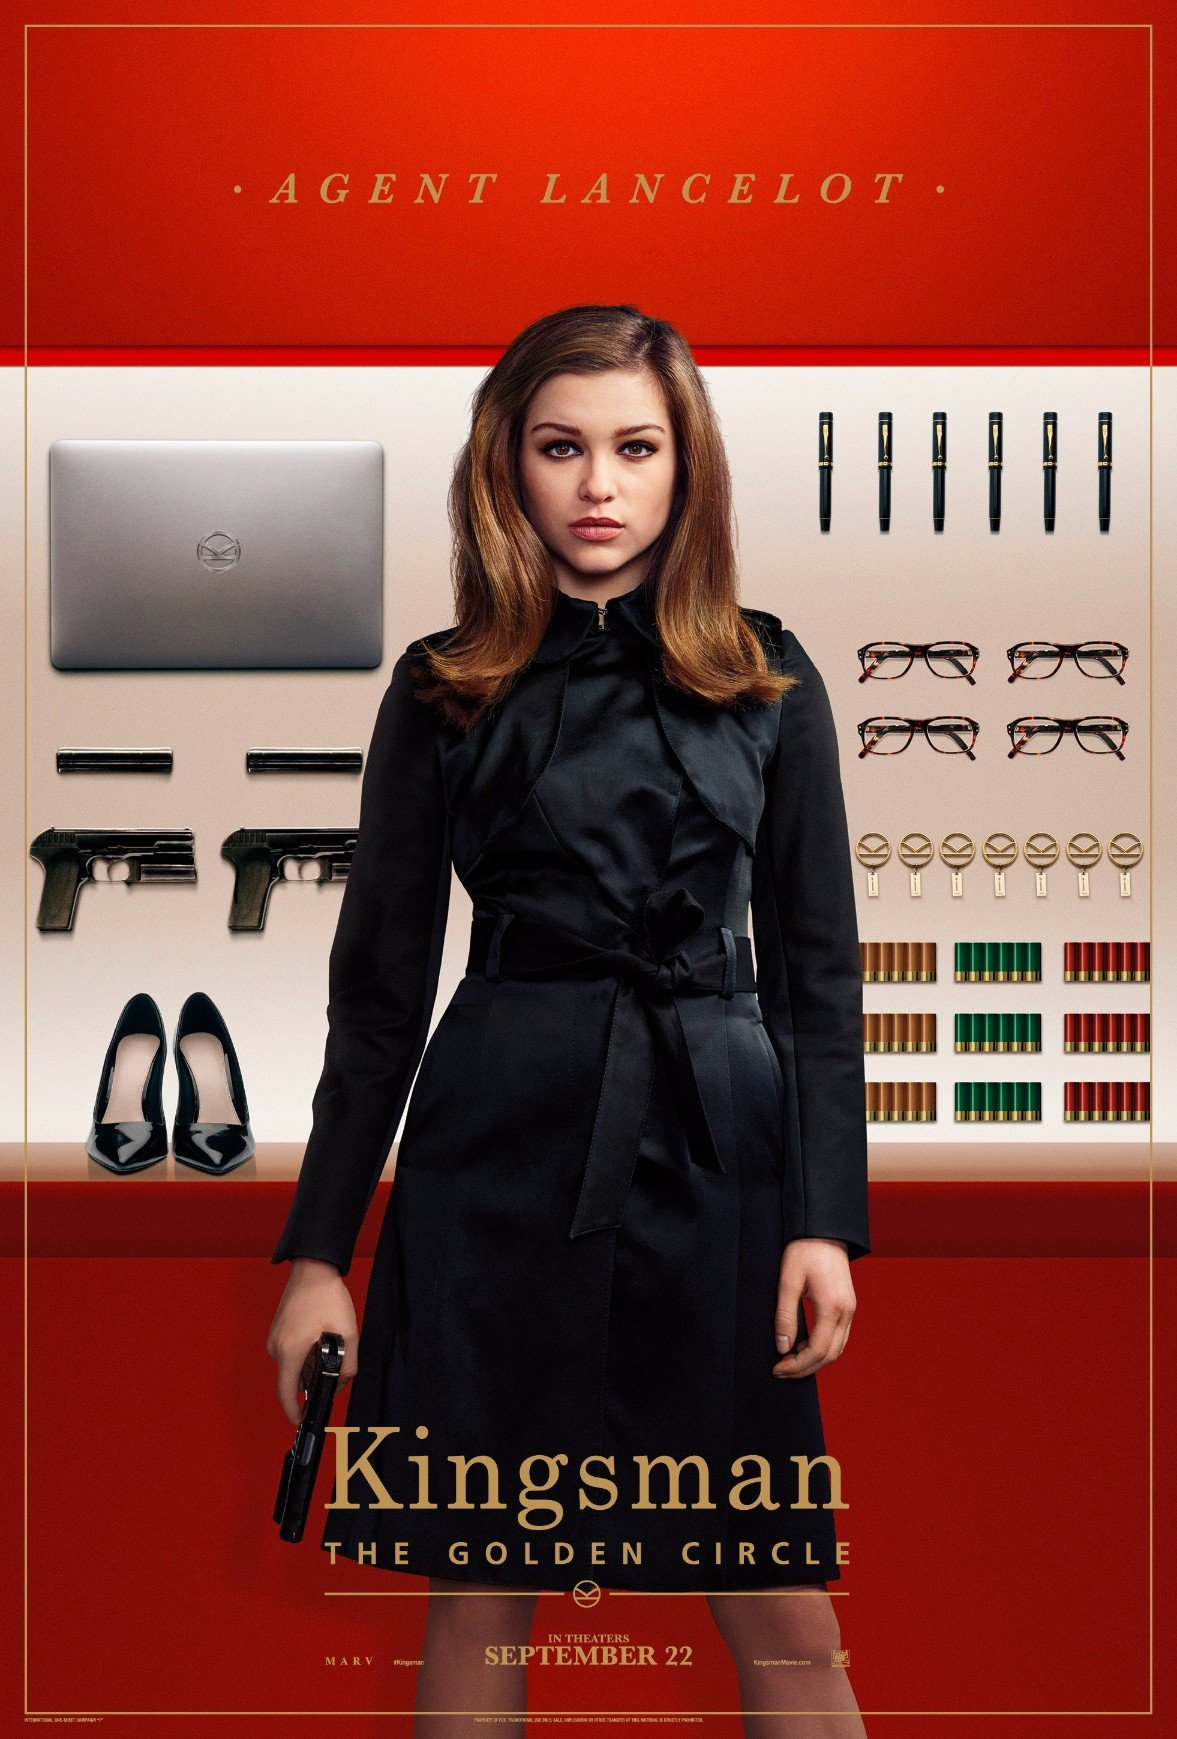 The Kingsman Tool Up In New Character Posters For The Golden Circle